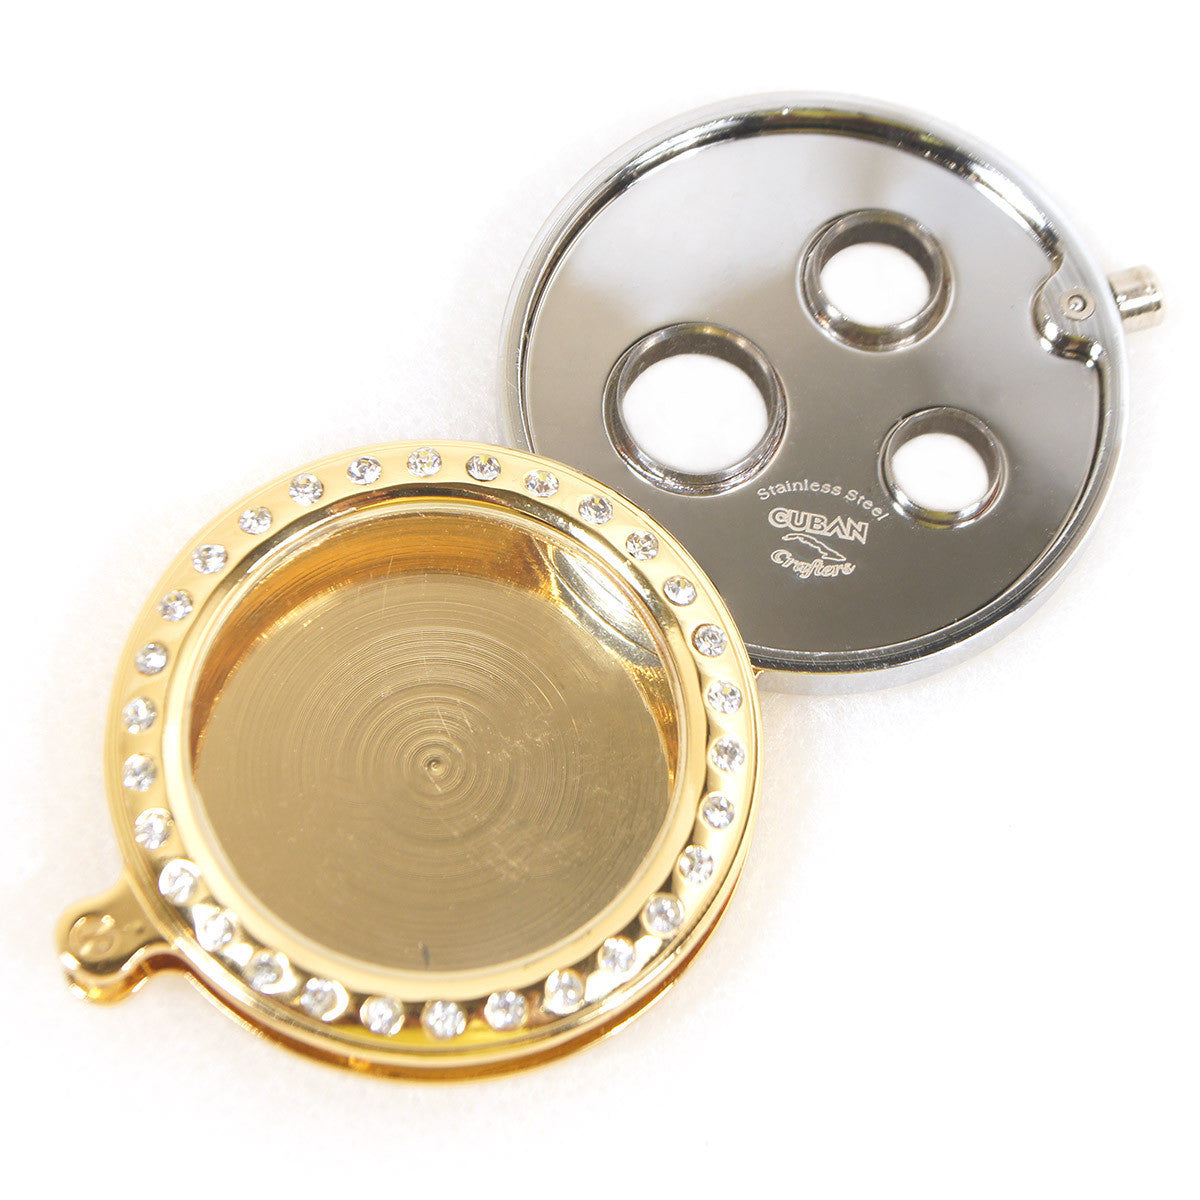 Cigar Cutter Punch in Gold With Diamond Frame - Humidors Wholesaler